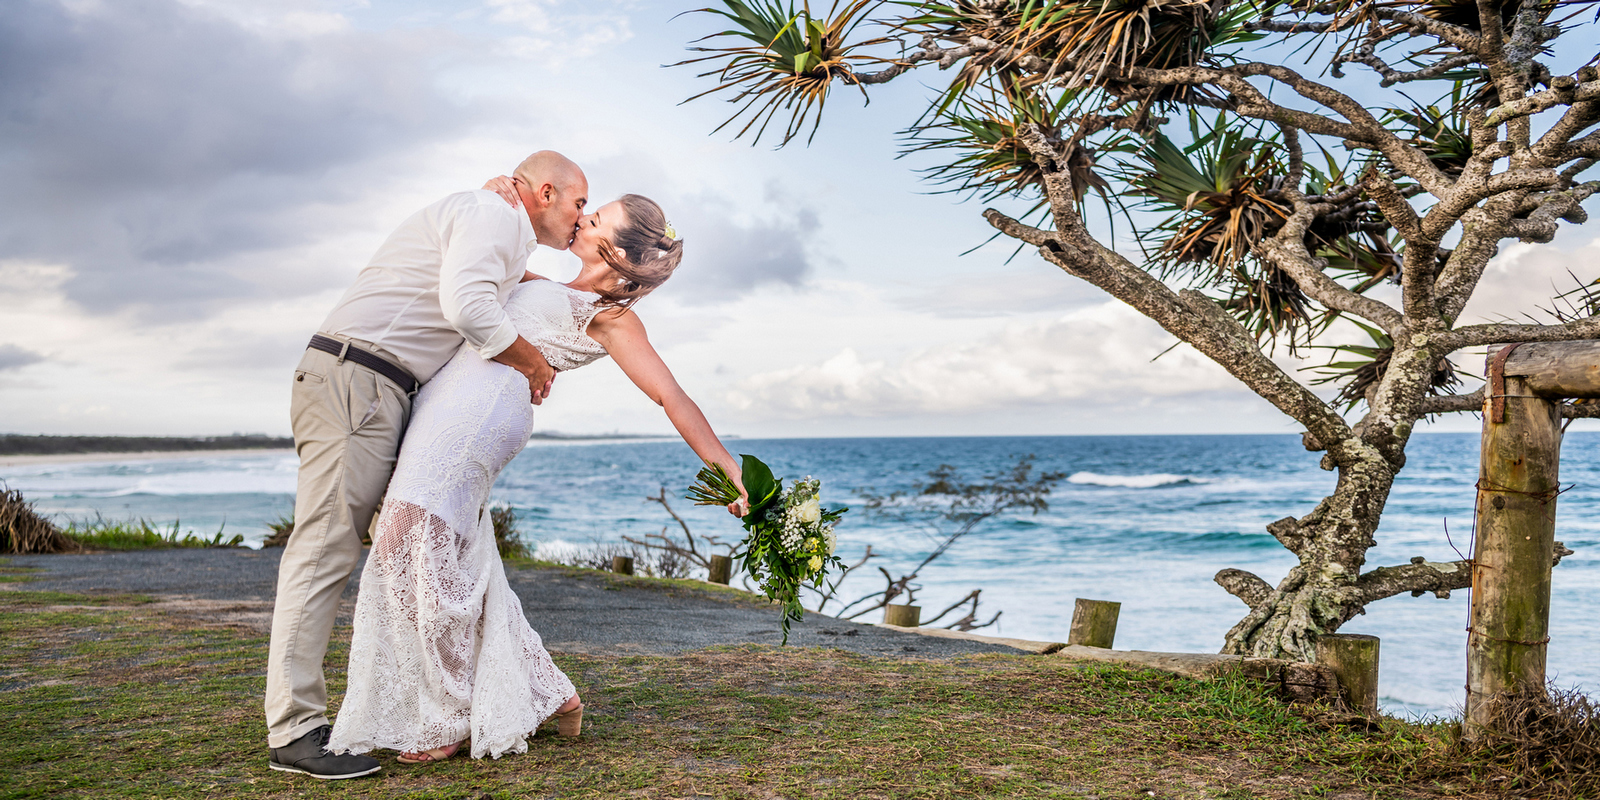 wedding day photo at gold coast